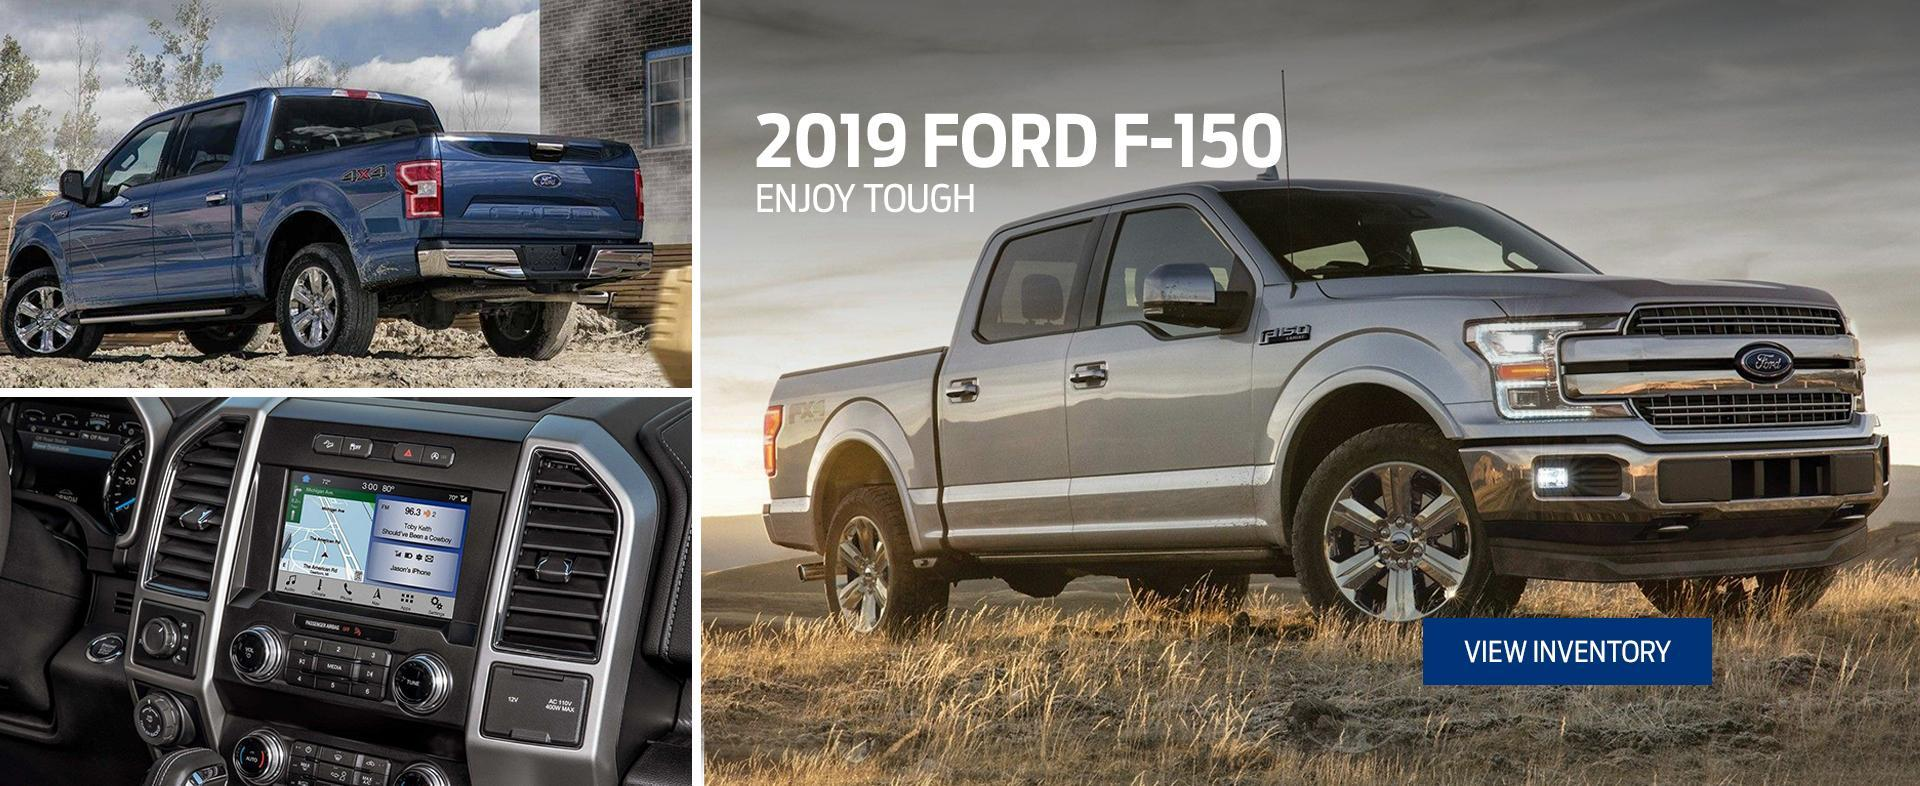 Ford Home 2019 F-150